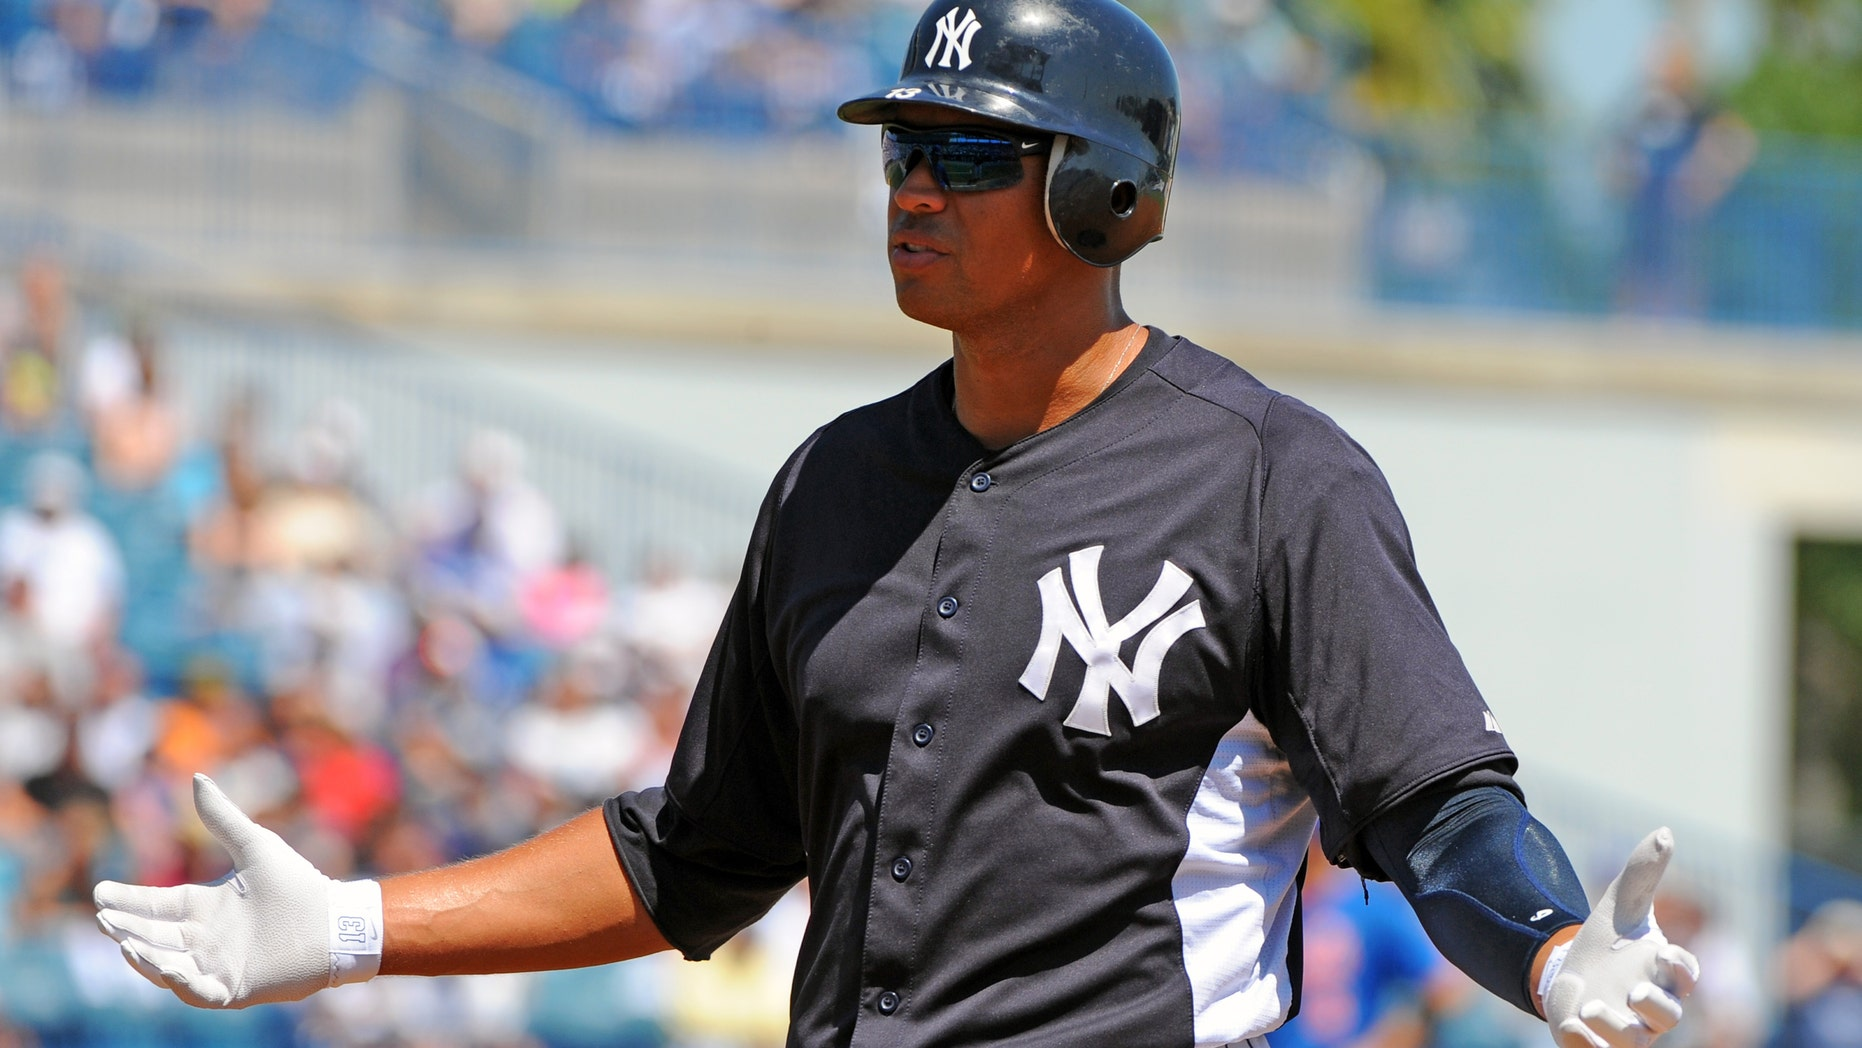 Baseball's highest-paid player, Alex Rodriguez. (Photo by Al Messerschmidt/Getty Images)